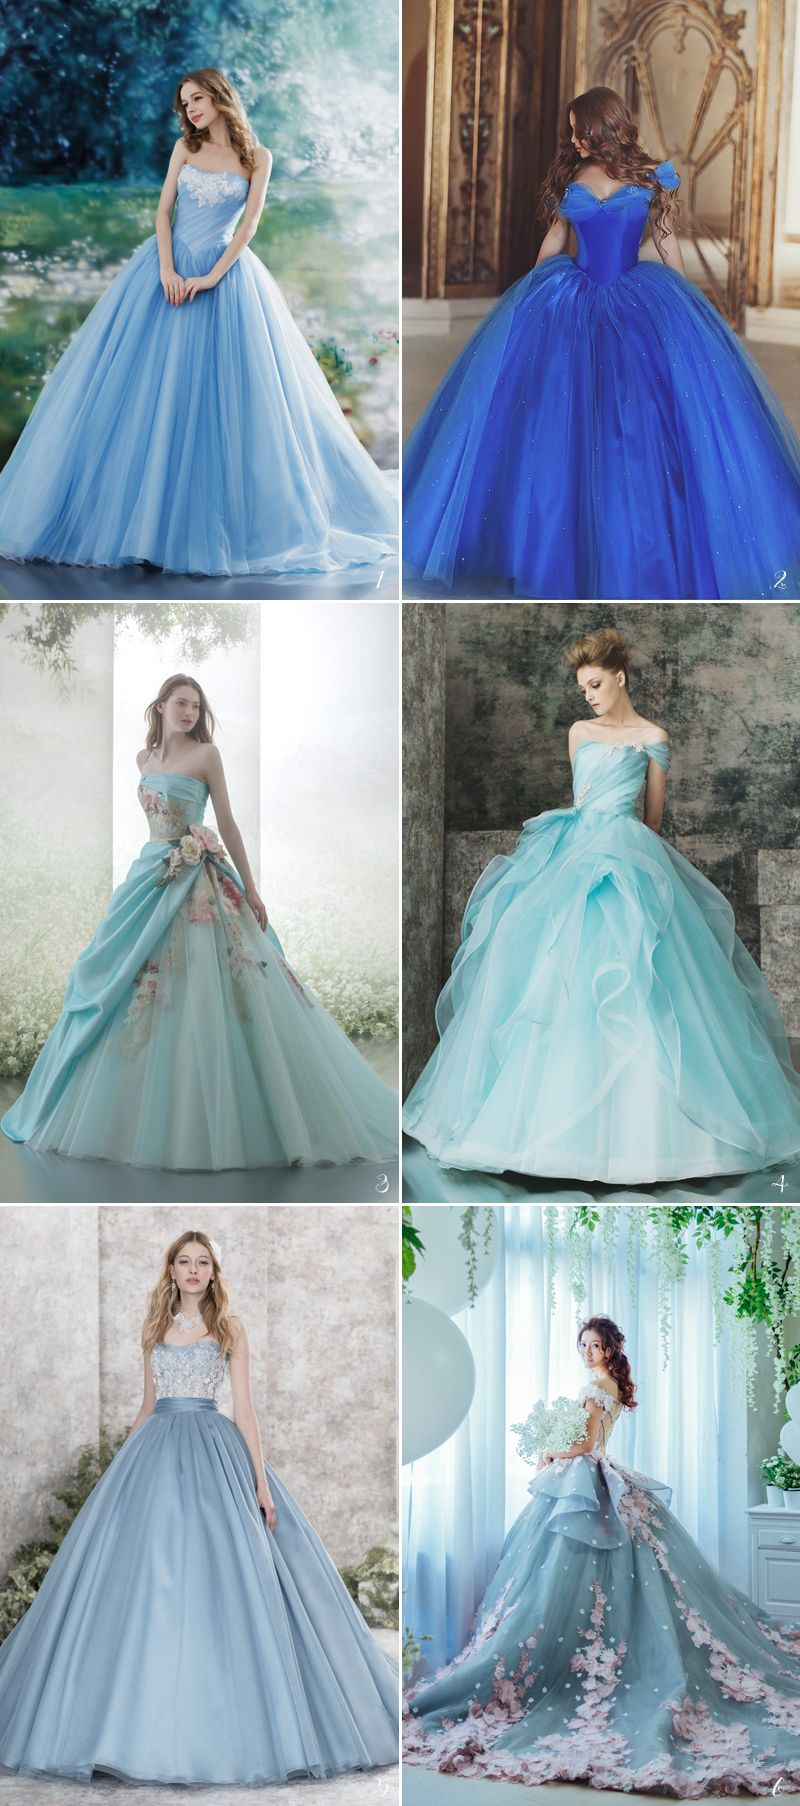 fairytale princess royal gown